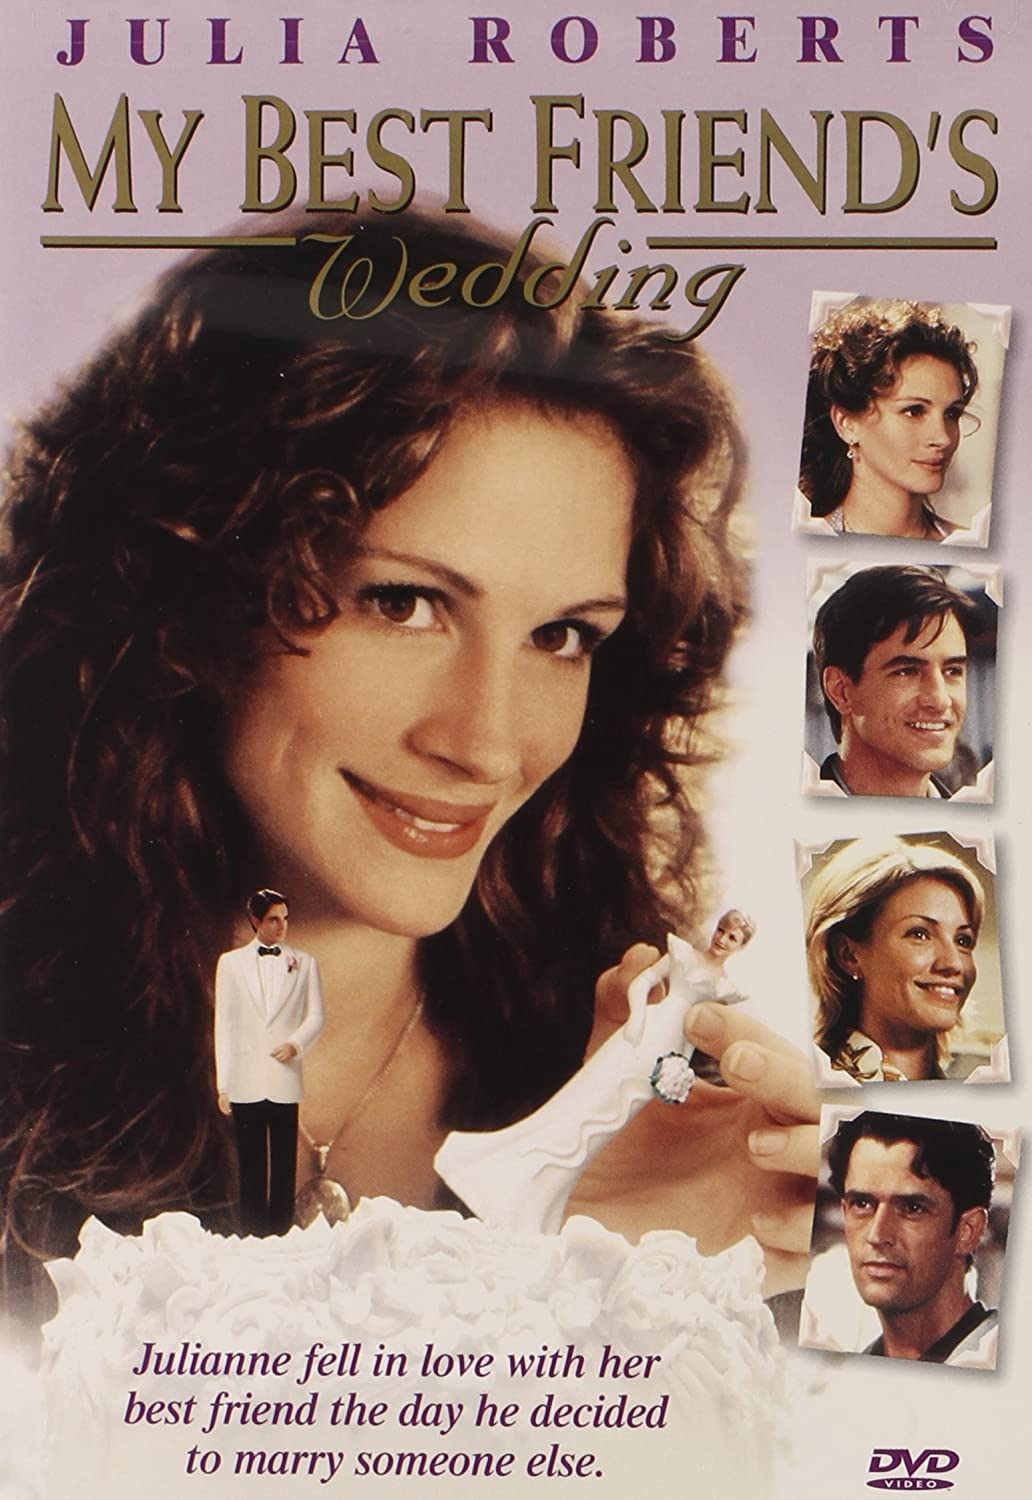 Amazon.com: My Best Friend's Wedding: Julia Roberts, Dermot ...